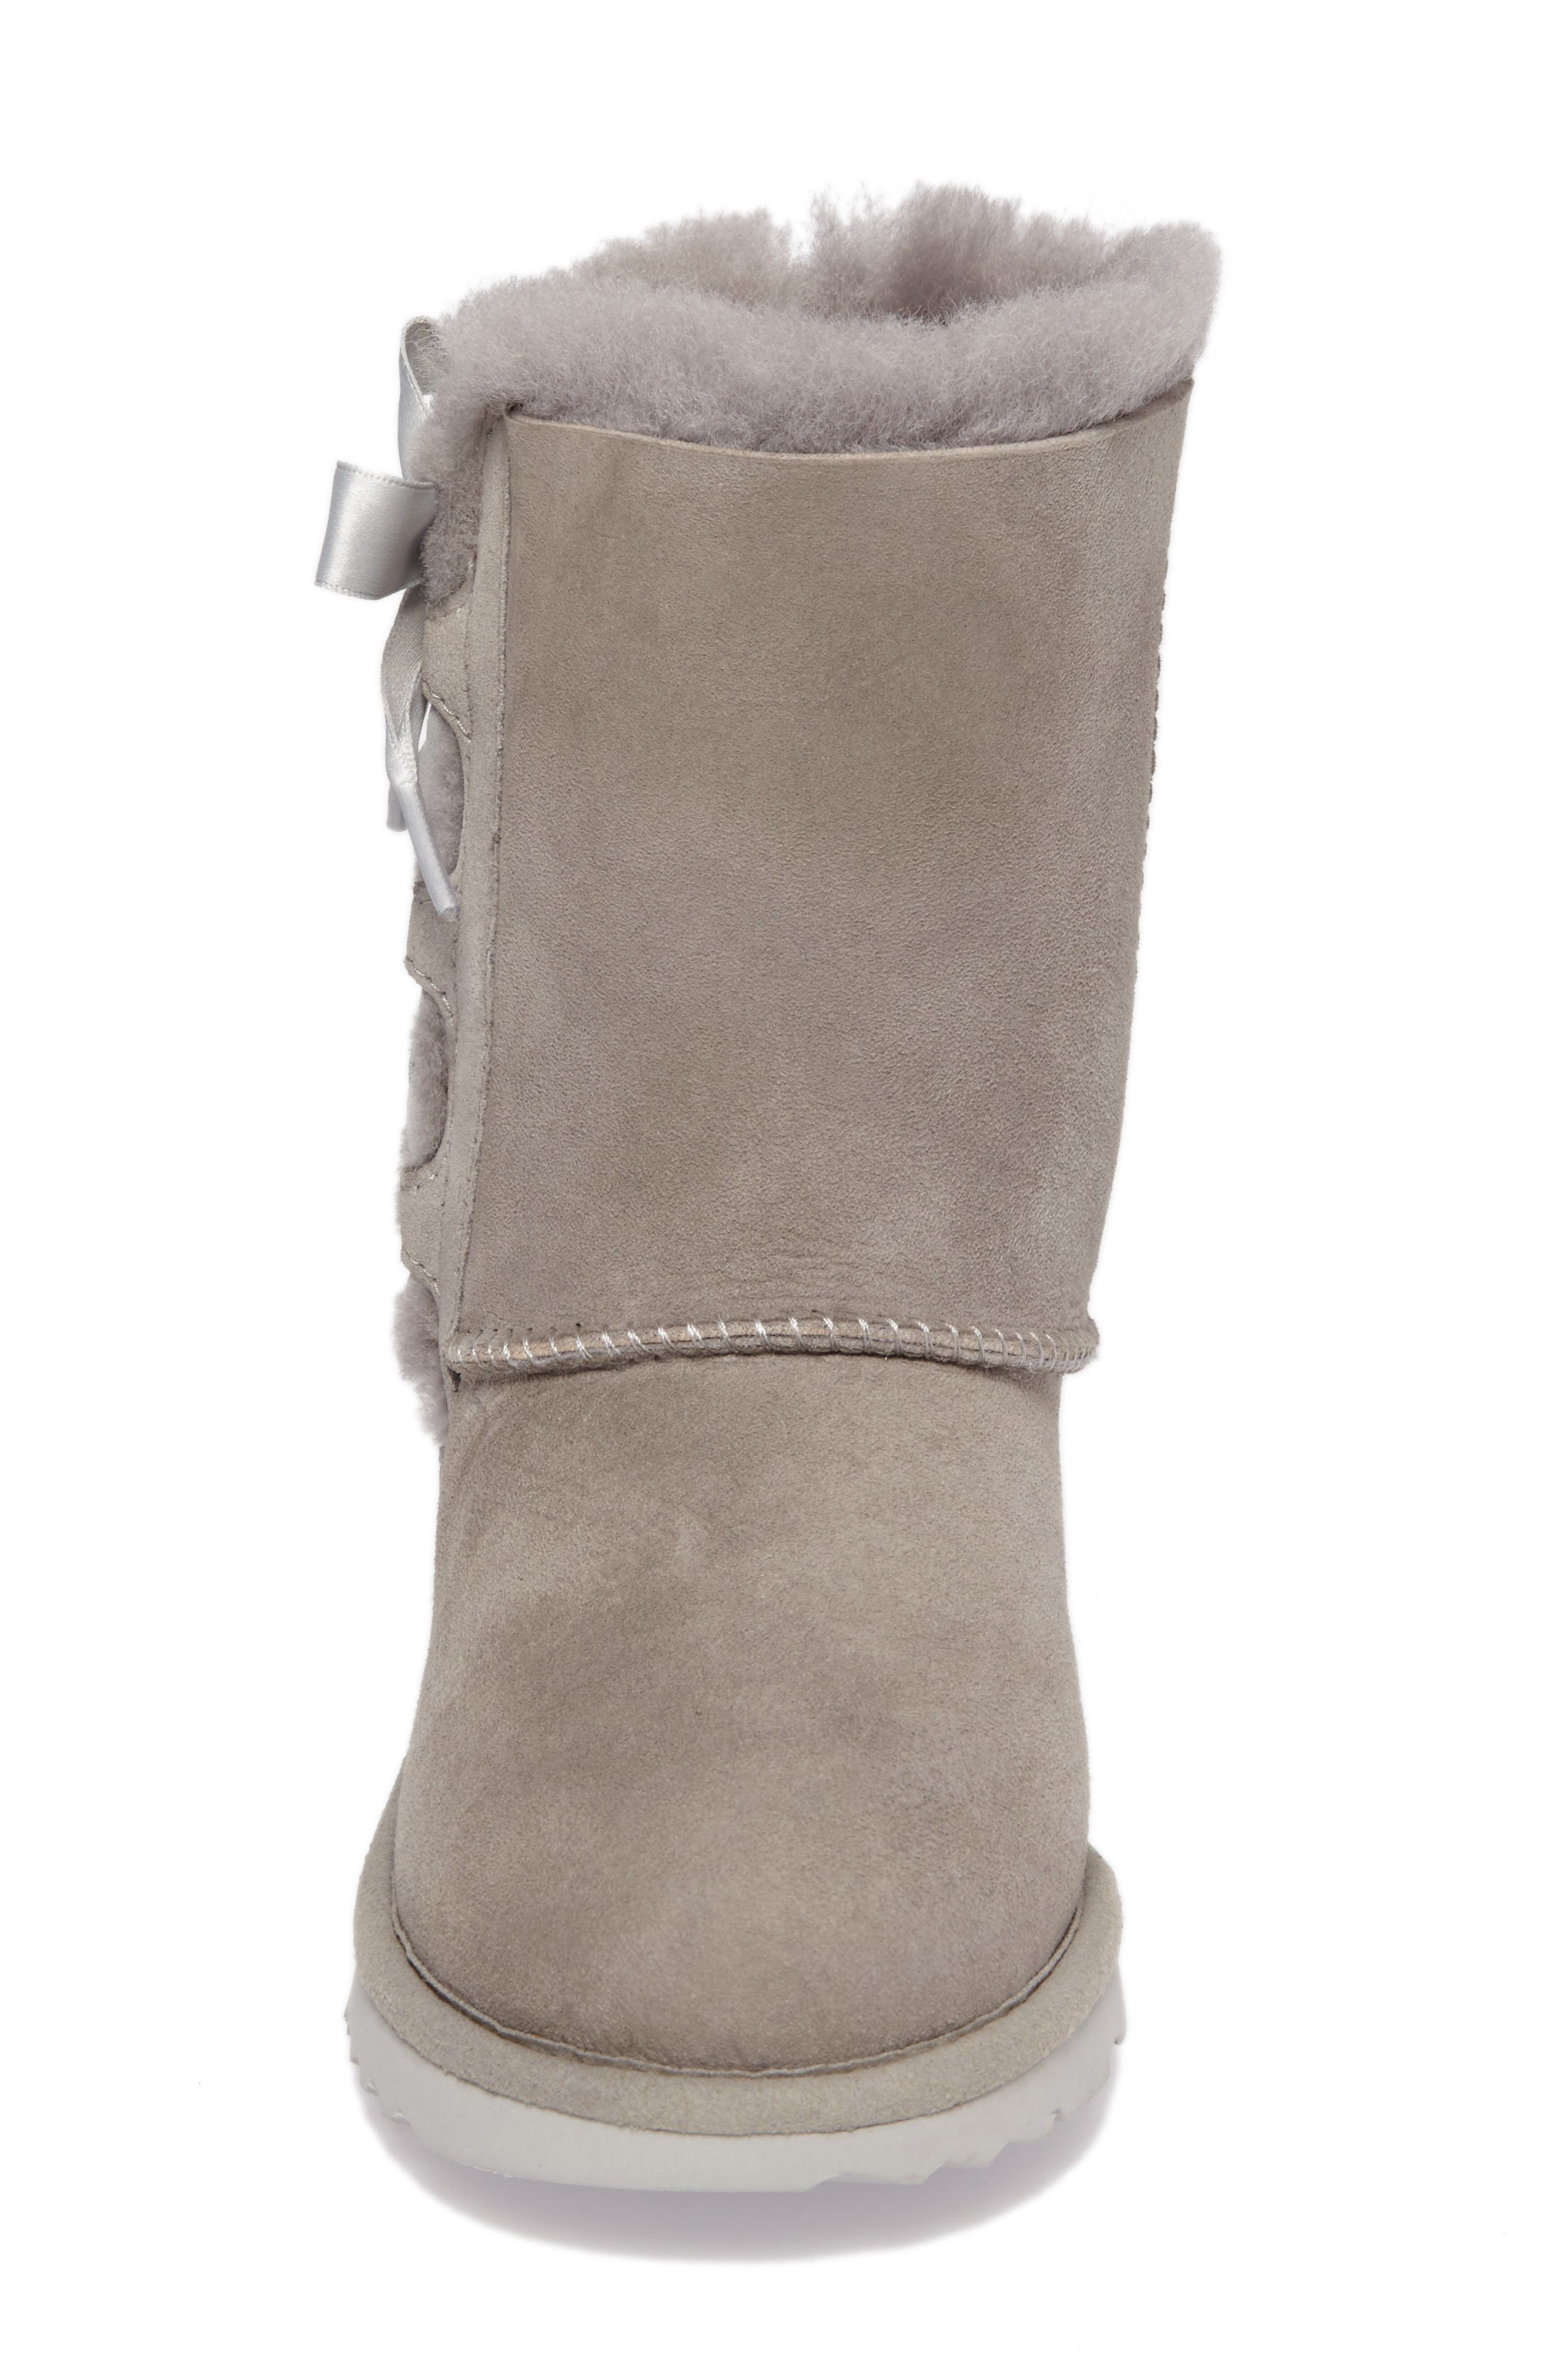 Alternate Image 4  - UGG® Pala Water-Resistant Genuine Shearling Boot (Walker, Toddler, Little Kid & Big Kid)